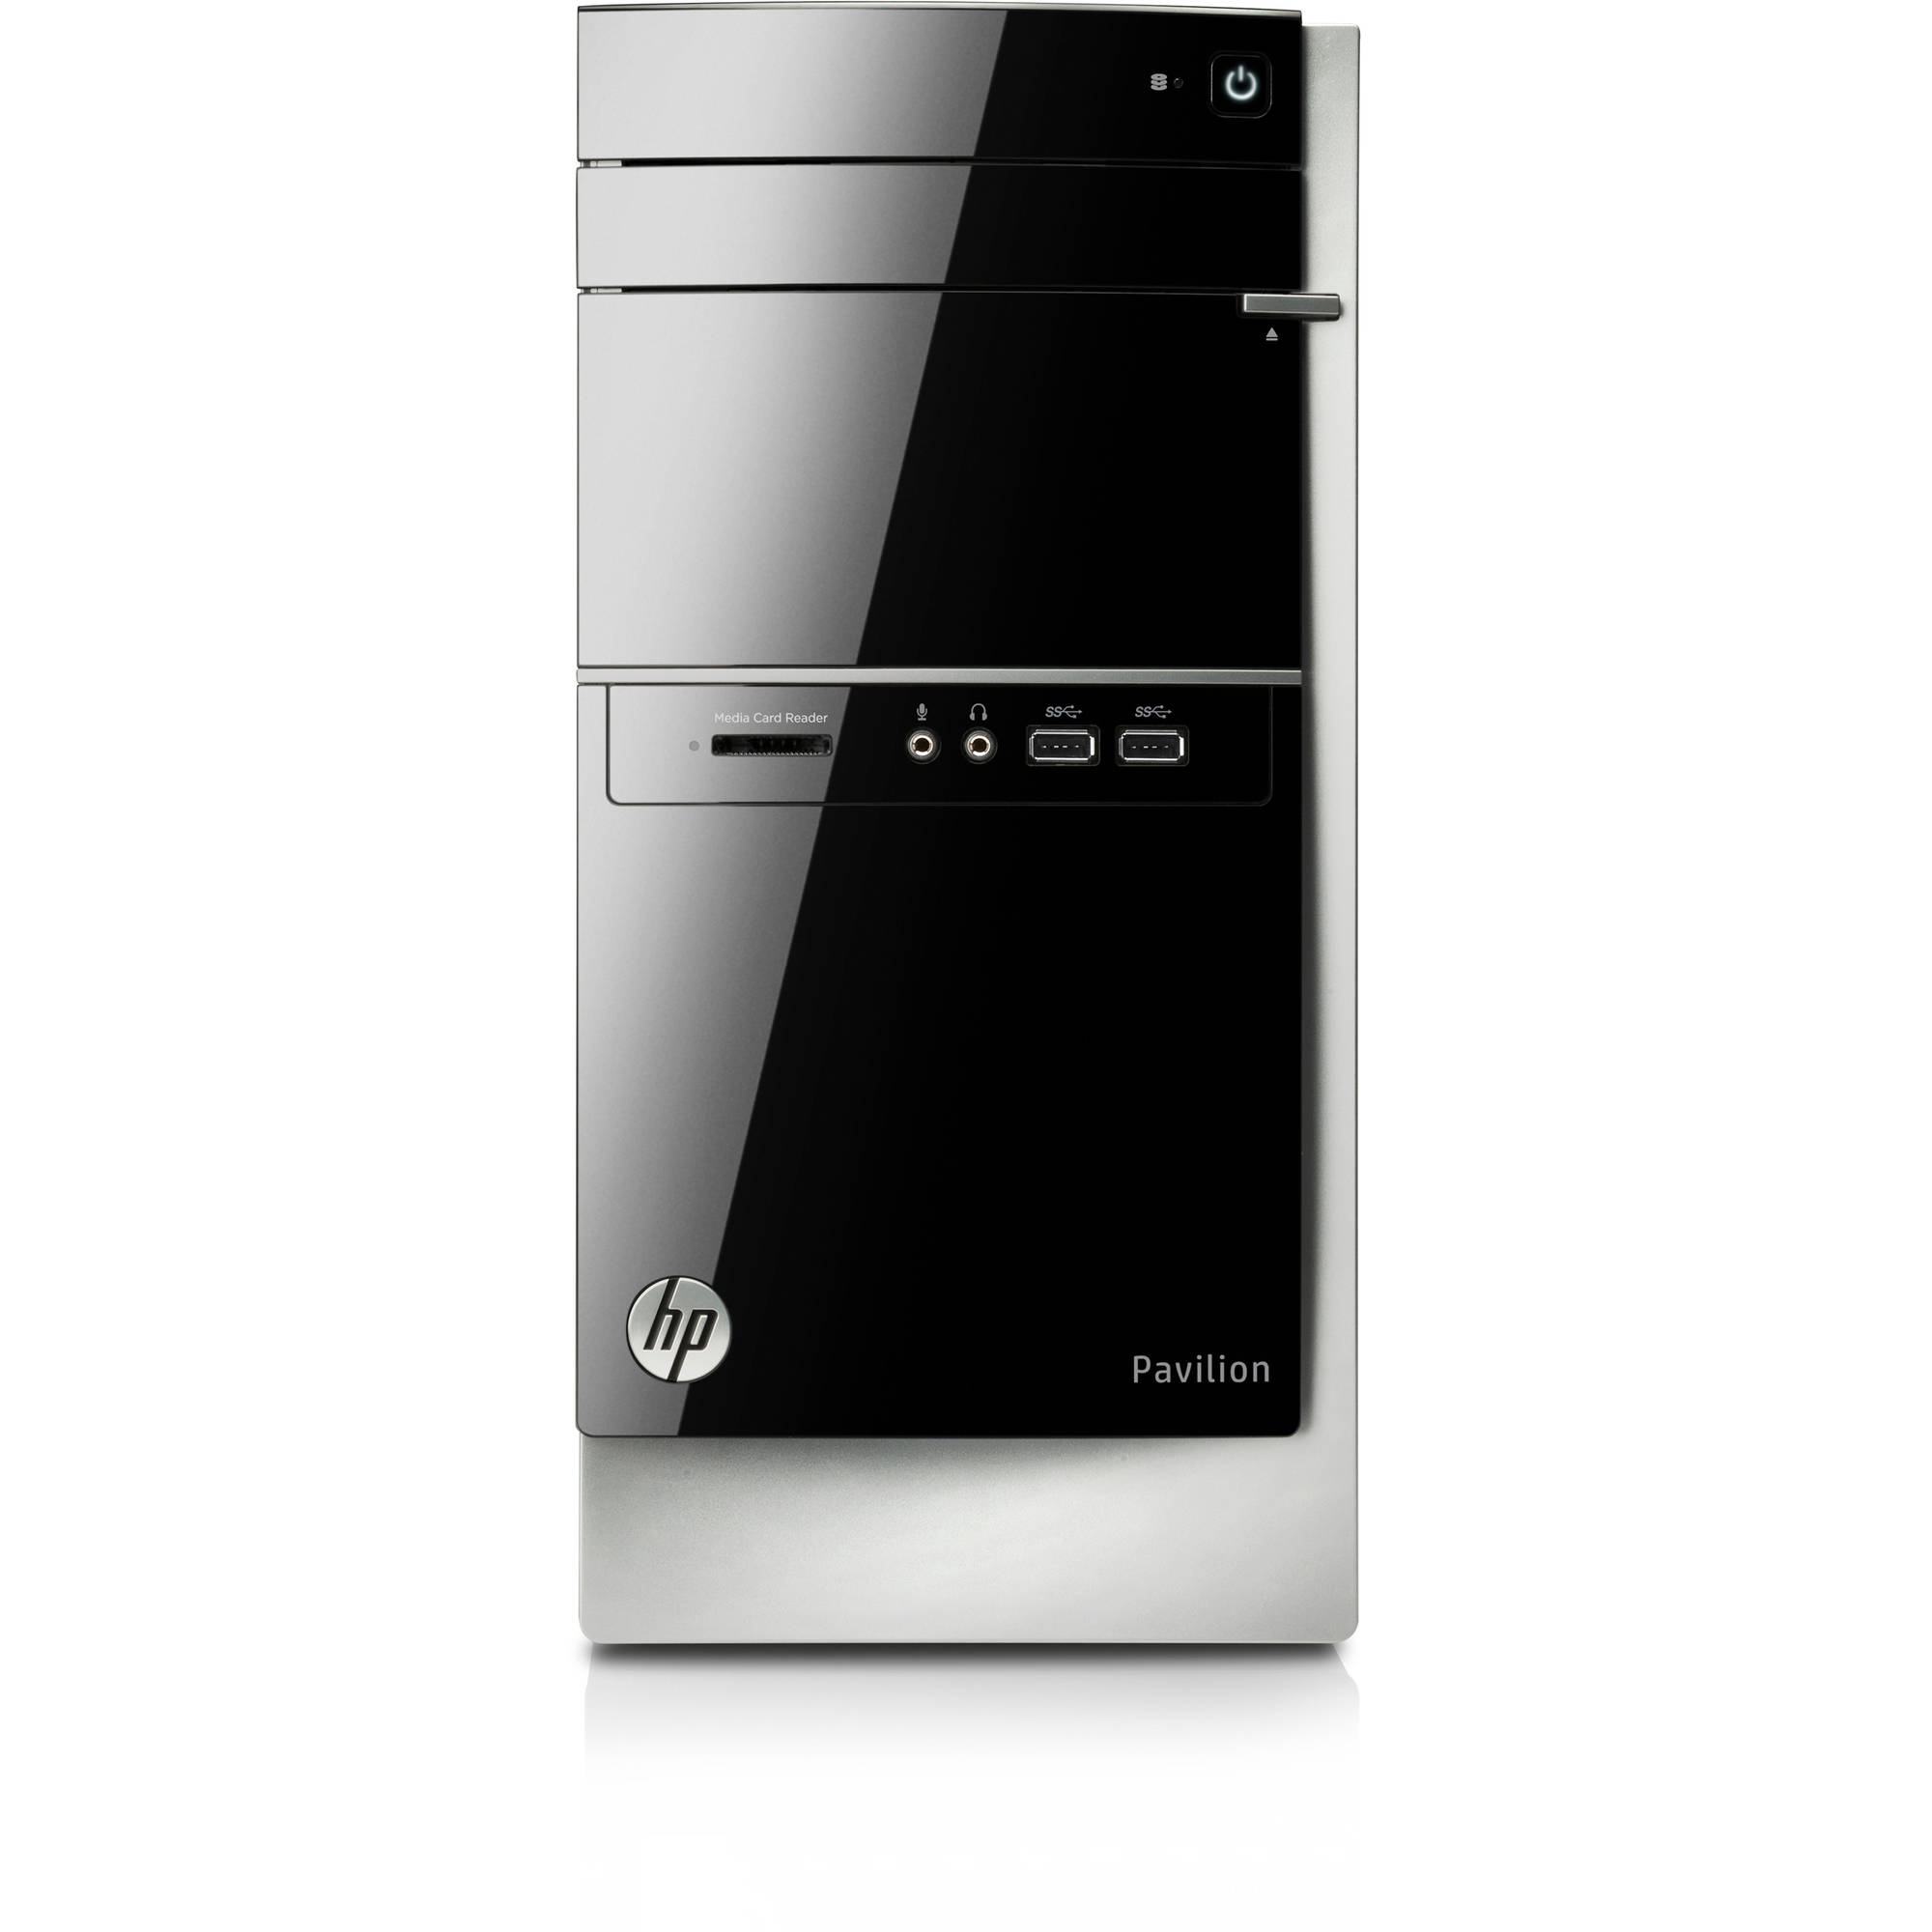 HP Pavilion 500-223w Desktop PC with Intel Core i3-4130 Processor, 8GB Memory, 1TB Hard Drive and Windows 8.1 (Free Windows 10 Upgrade before July 29, 2016) Monitor Not Included